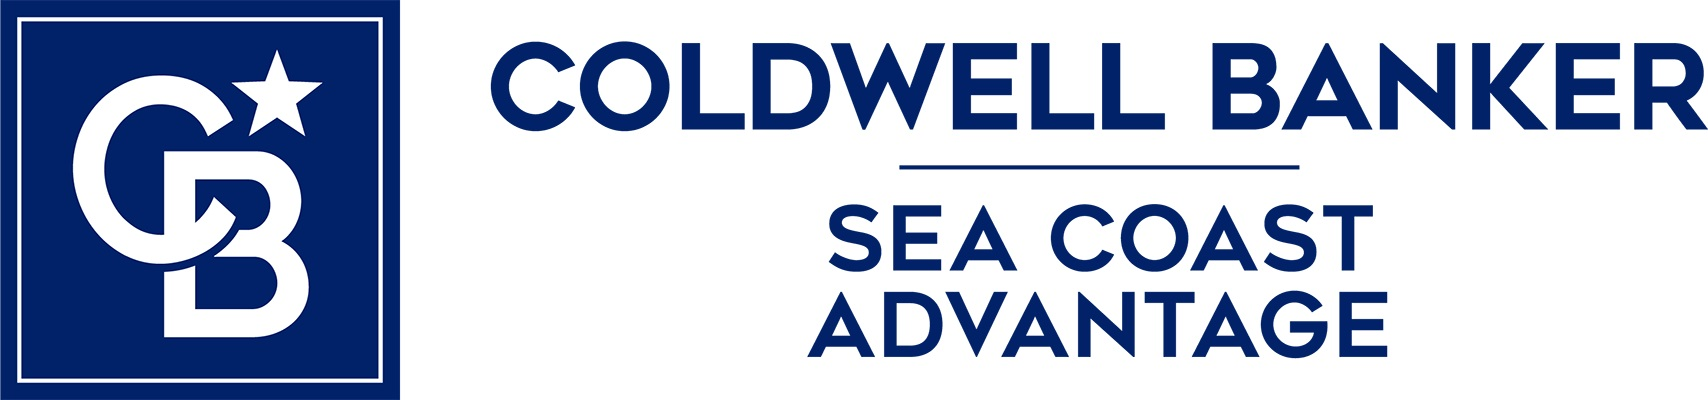 Dana White - Coldwell Banker Sea Coast Advantage Realty Logo